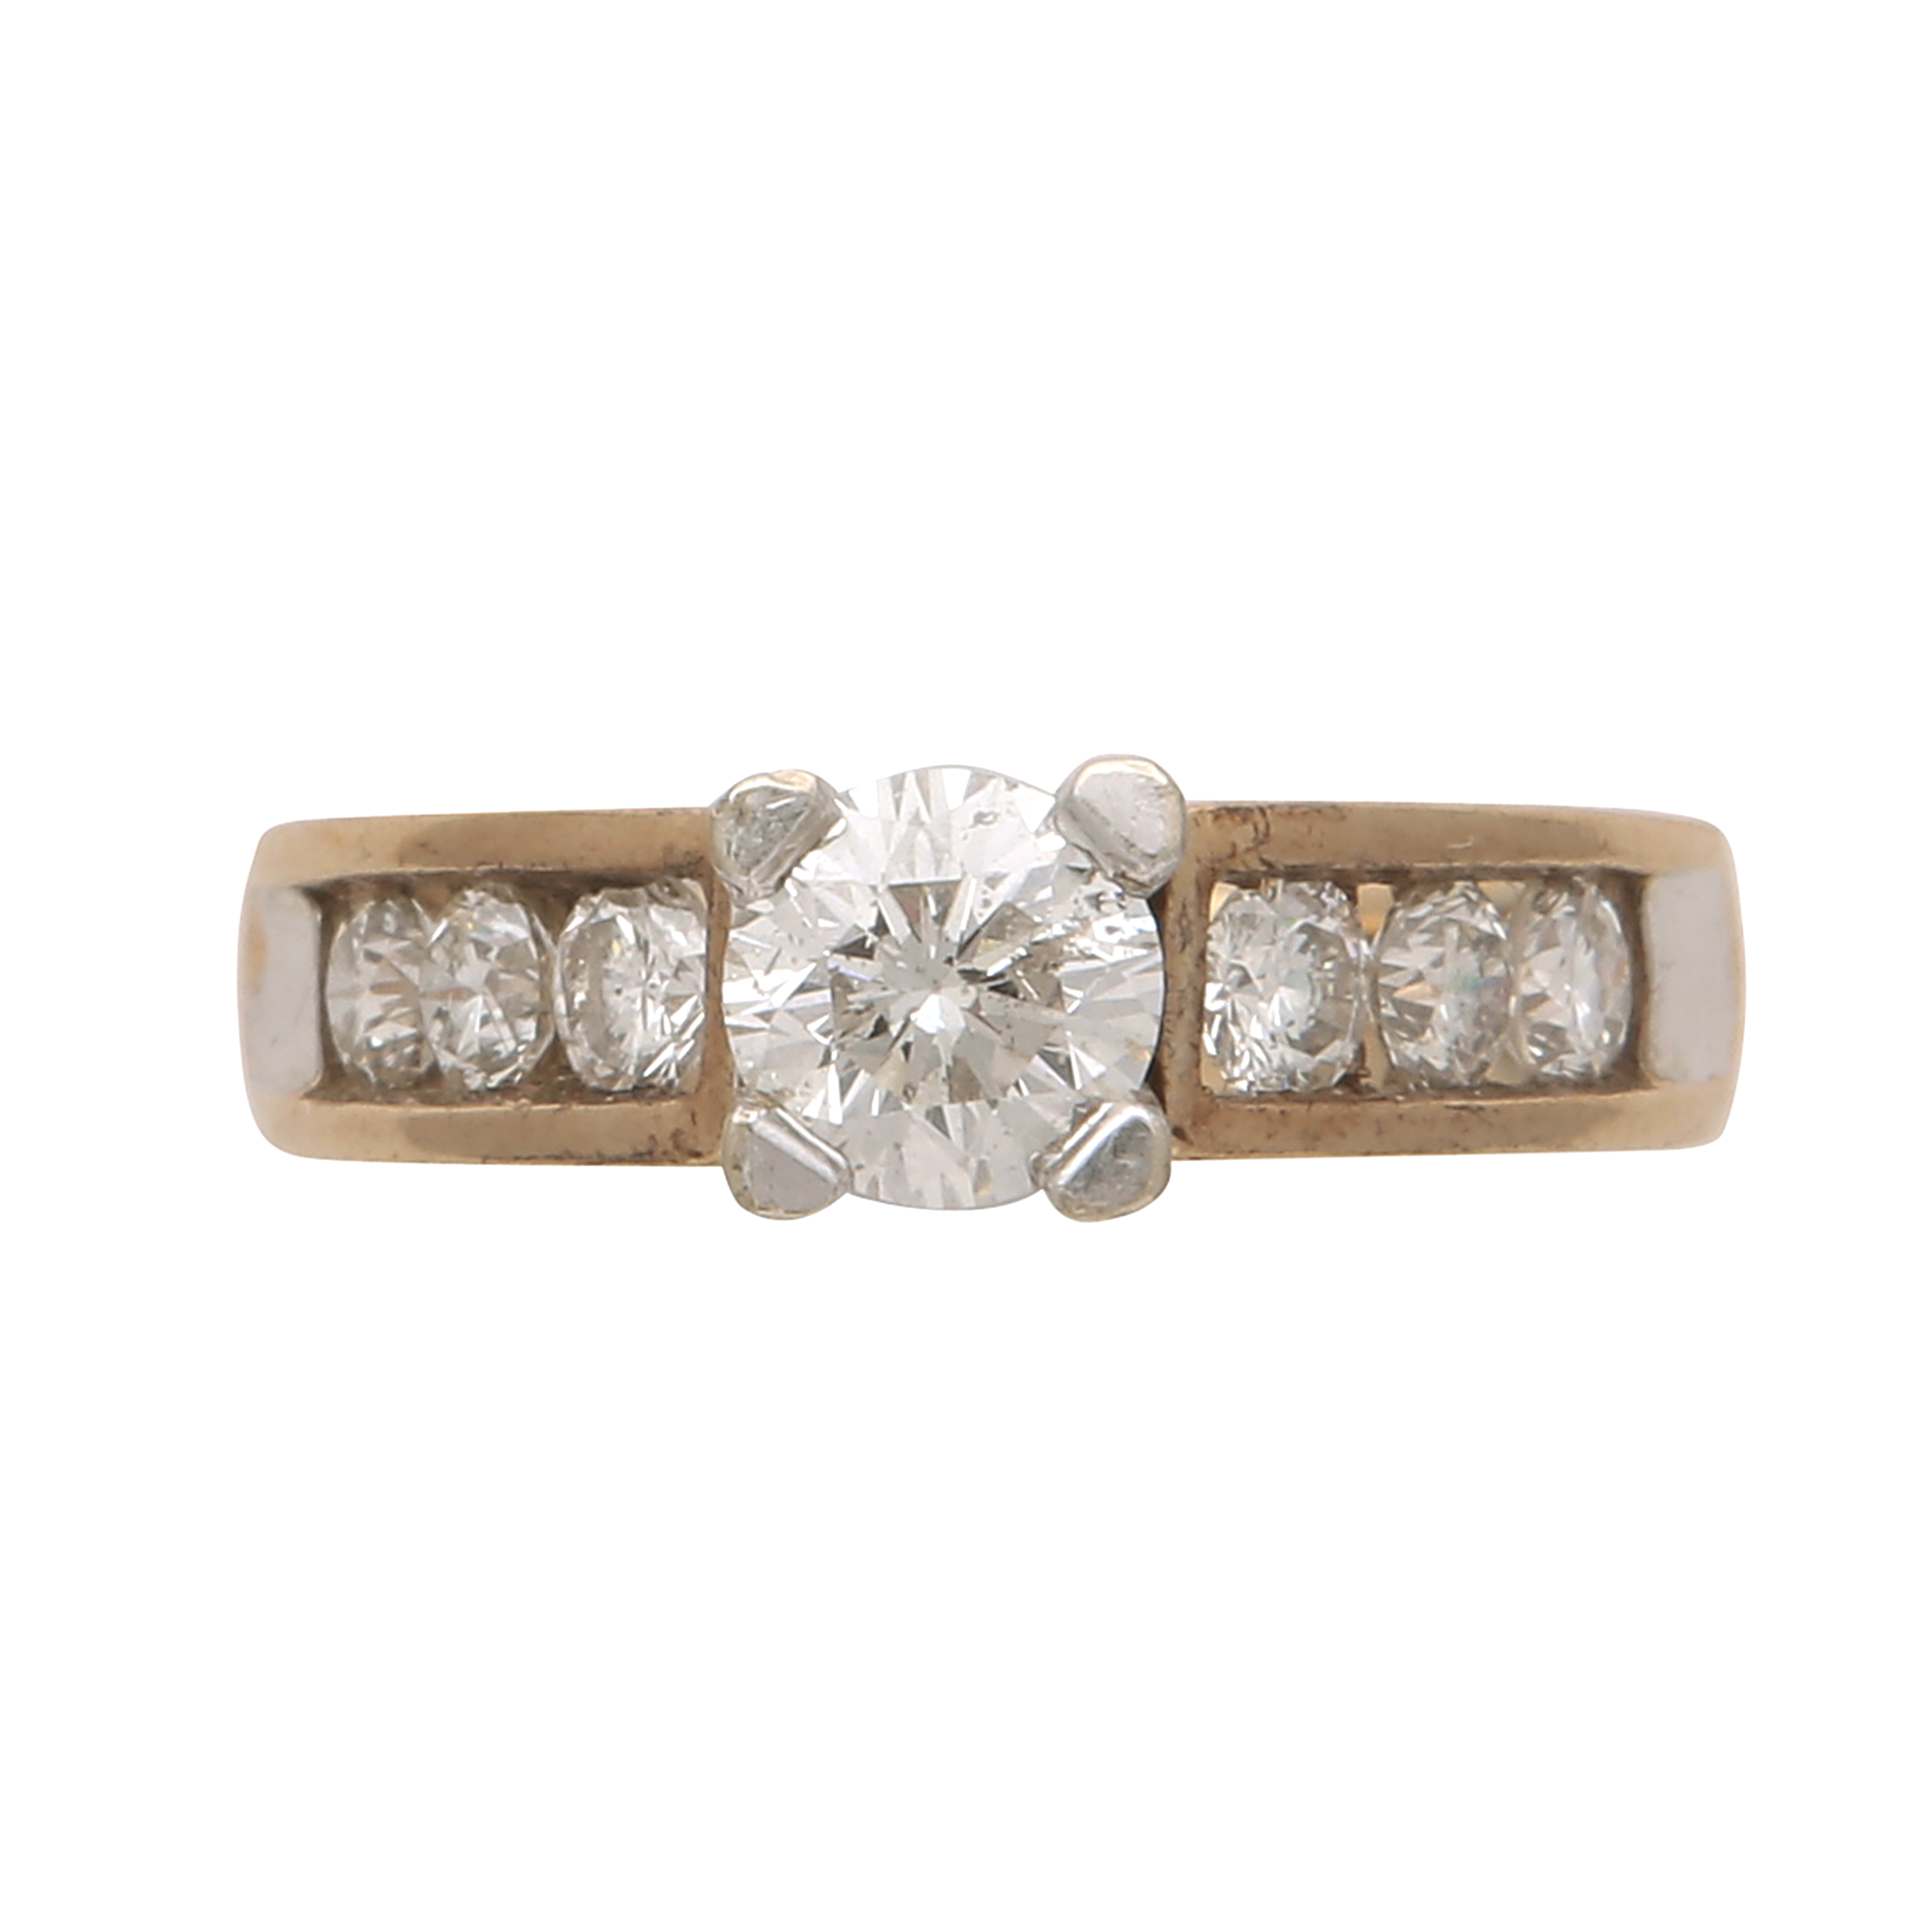 Los 183 - A diamond dress ring in yellow gold set with a round cut stone weighing approximately 0.76cts,